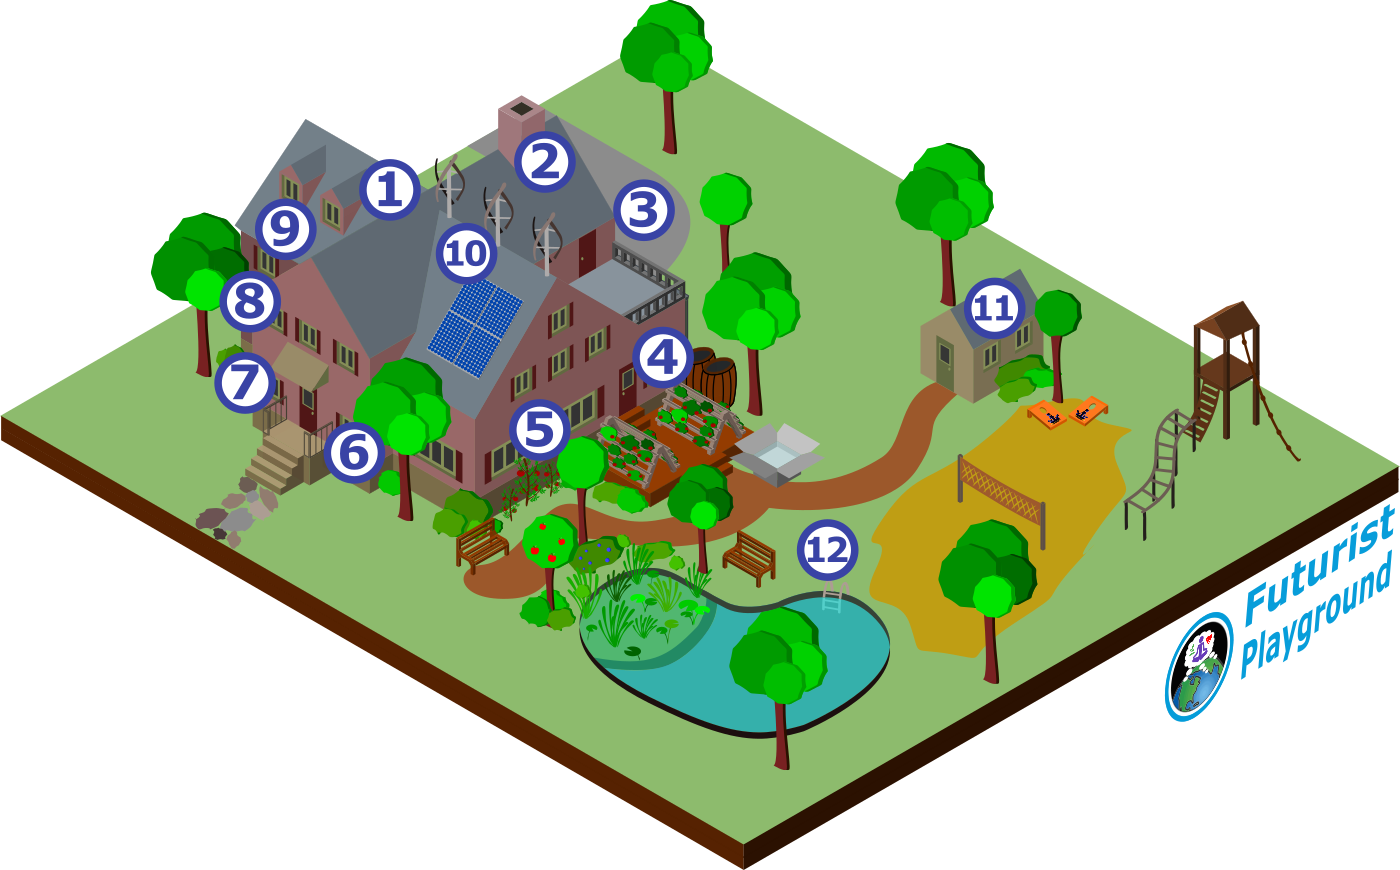 Model example of the Community House Network